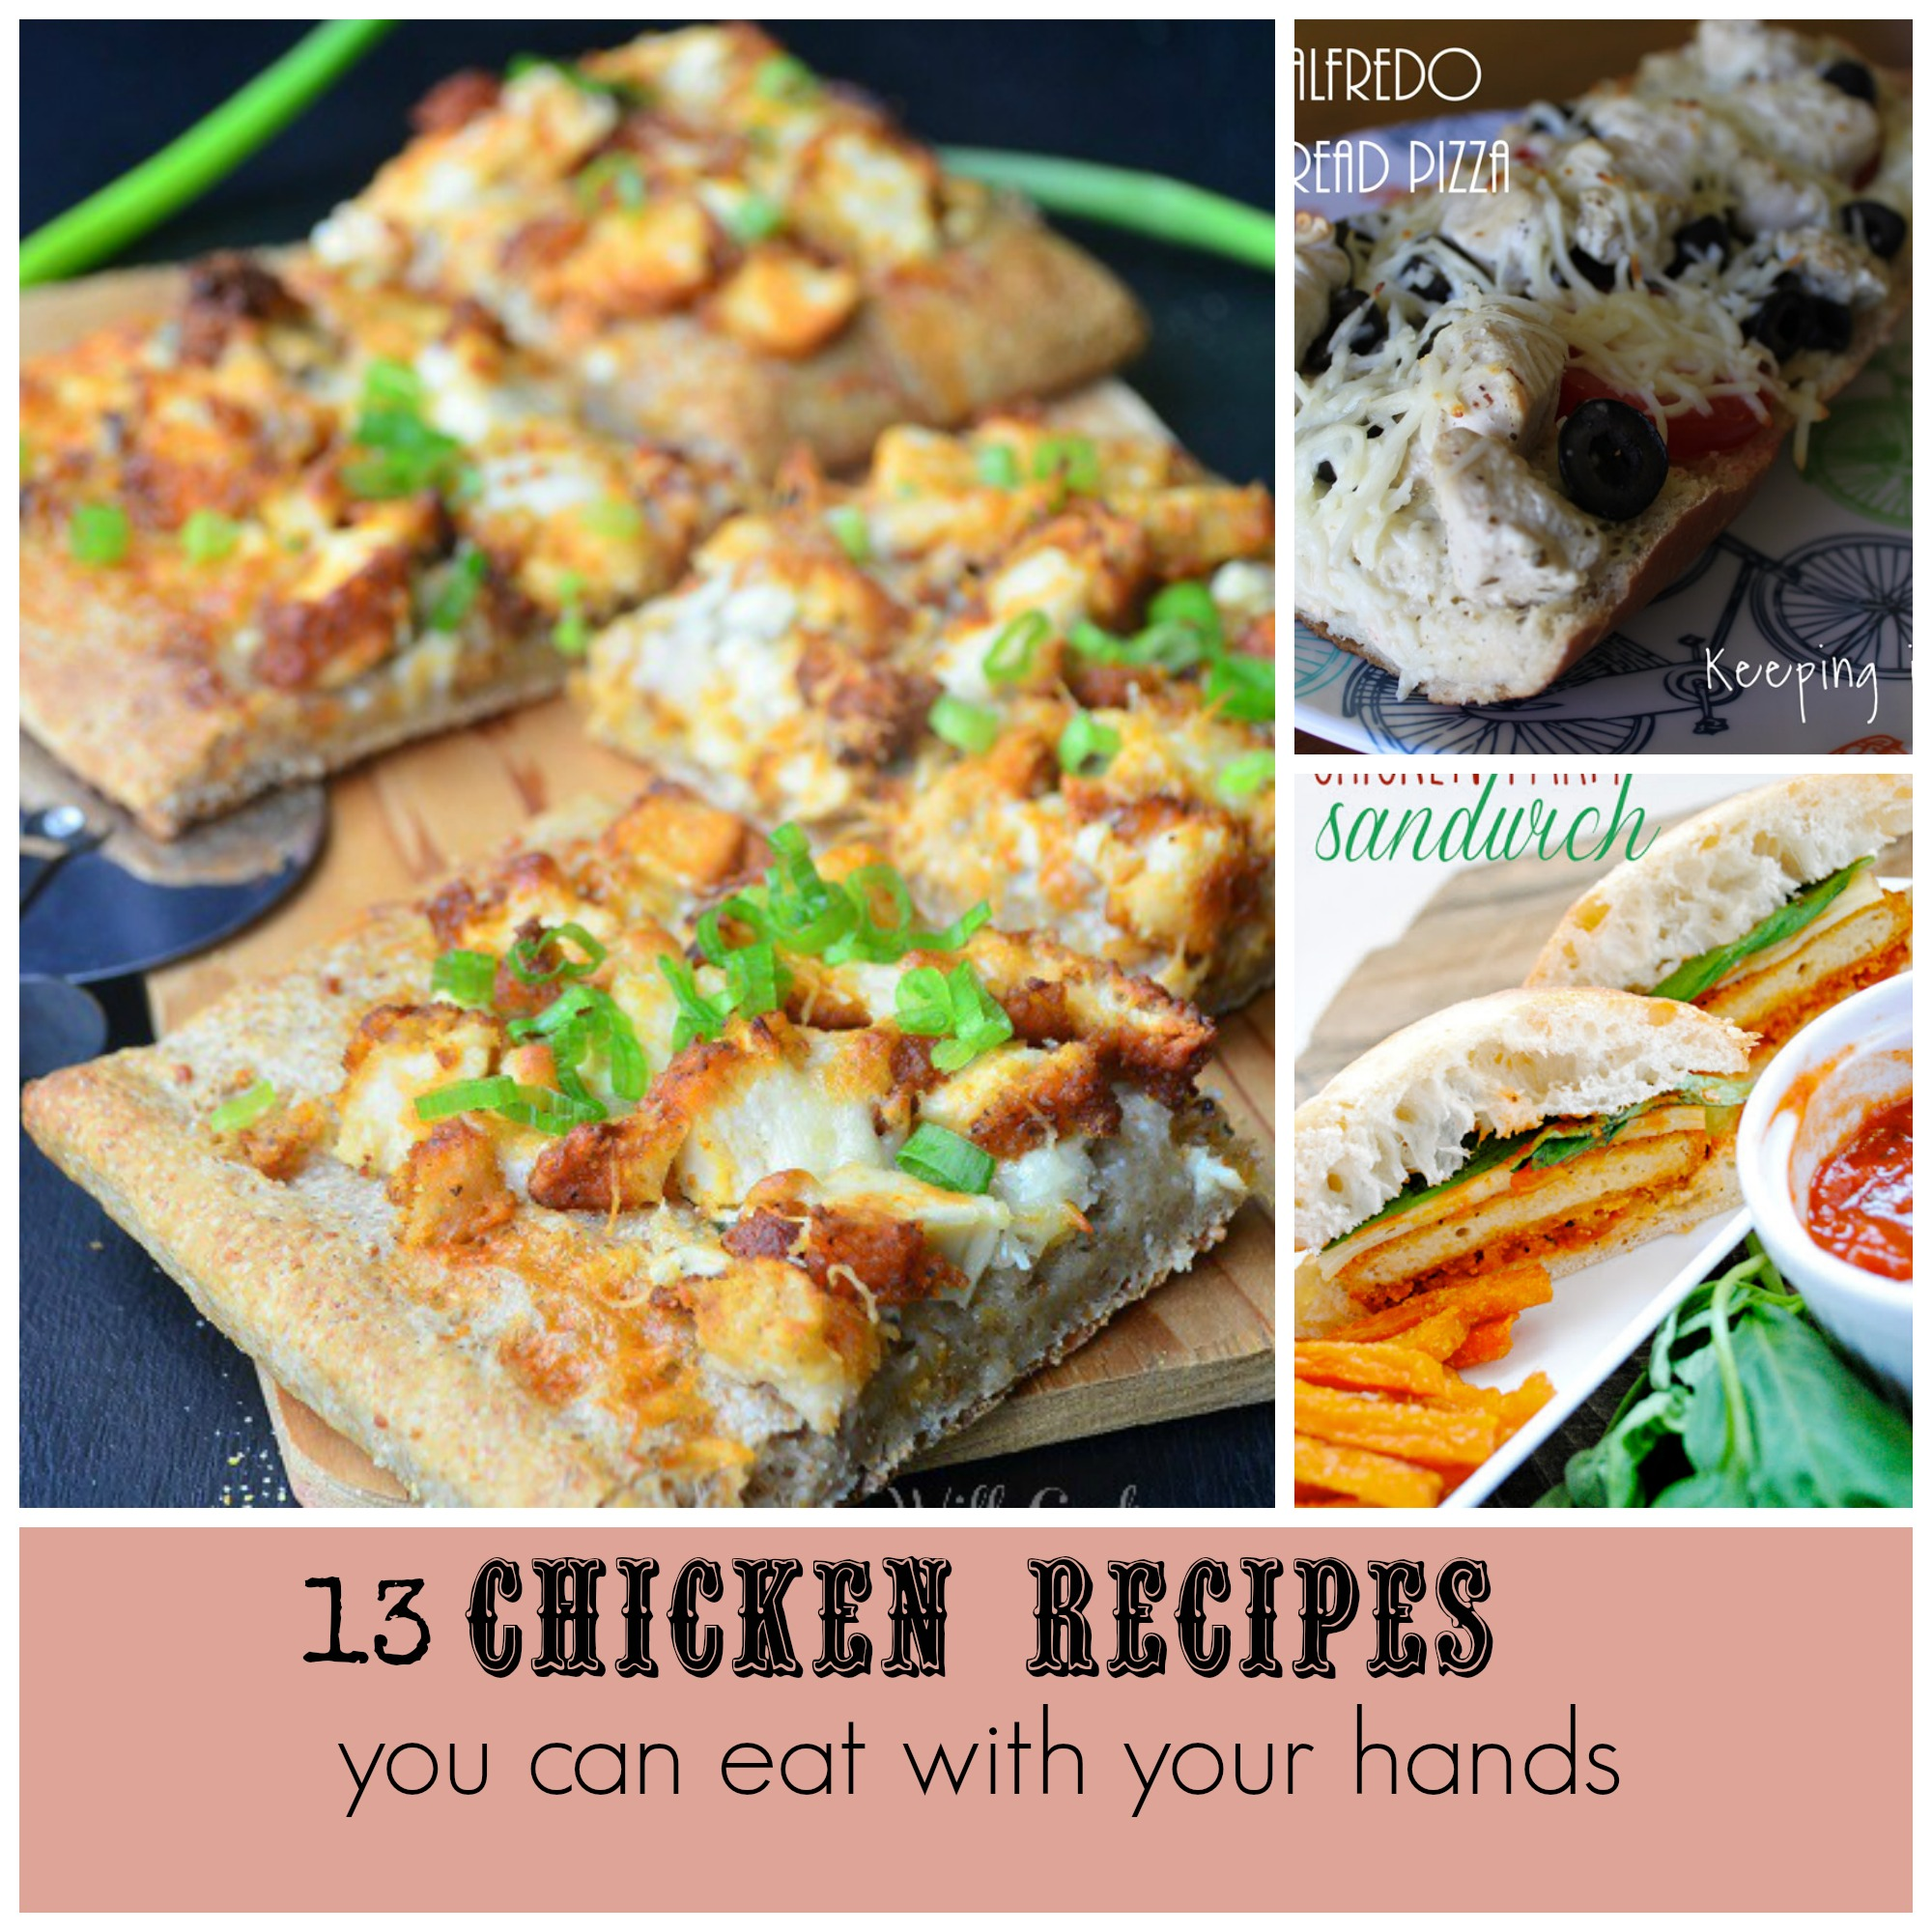 #ad 13 Tyson Chicken Recipes You Can Eat With Your Hands